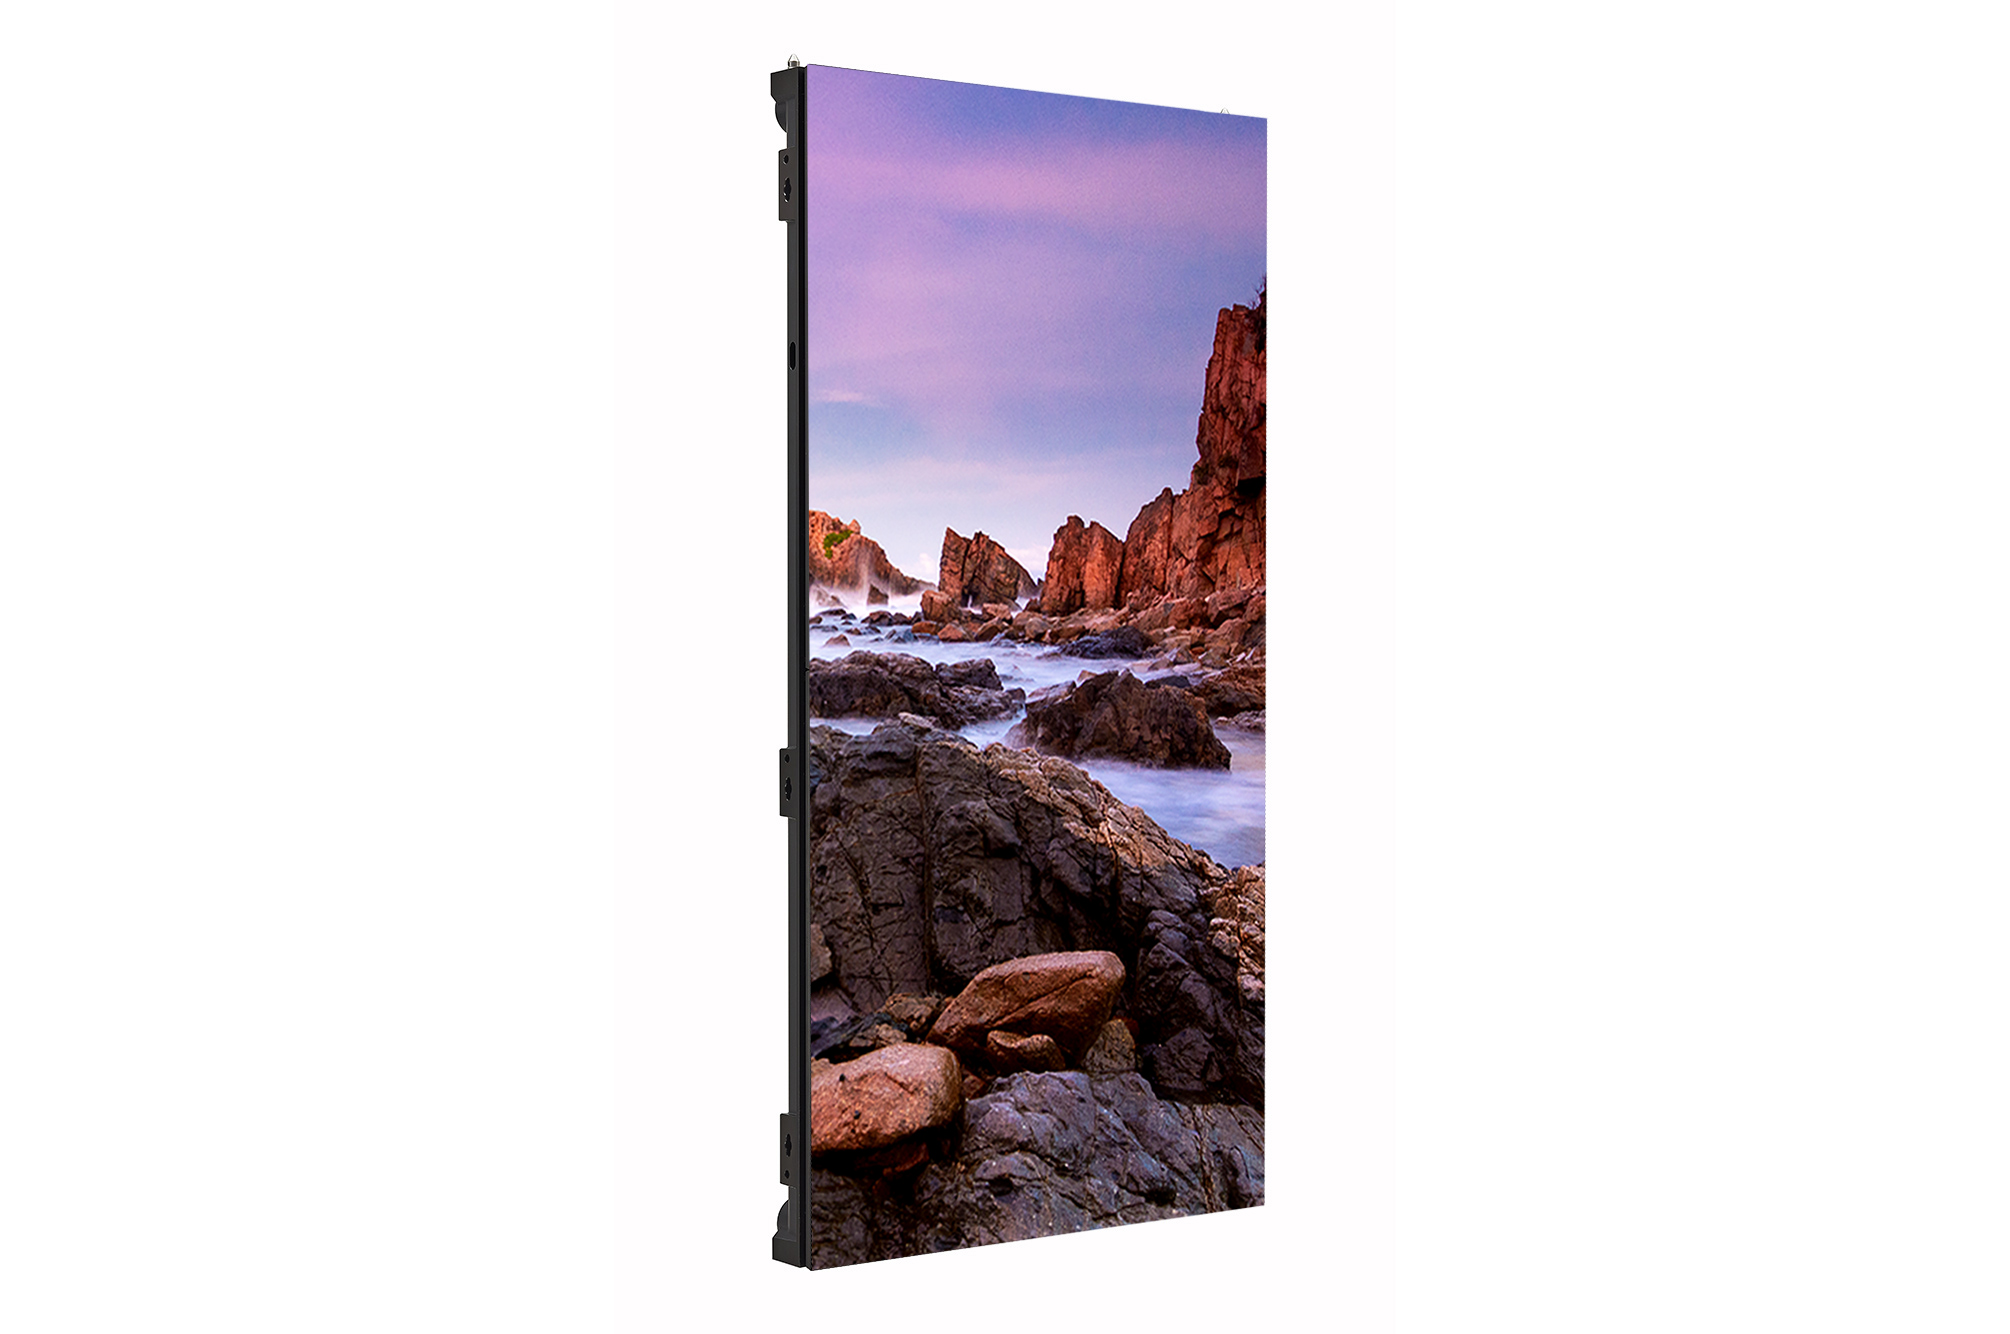 Digital Signage LSCA, right 45 degree side view with inscreen, 500x1000